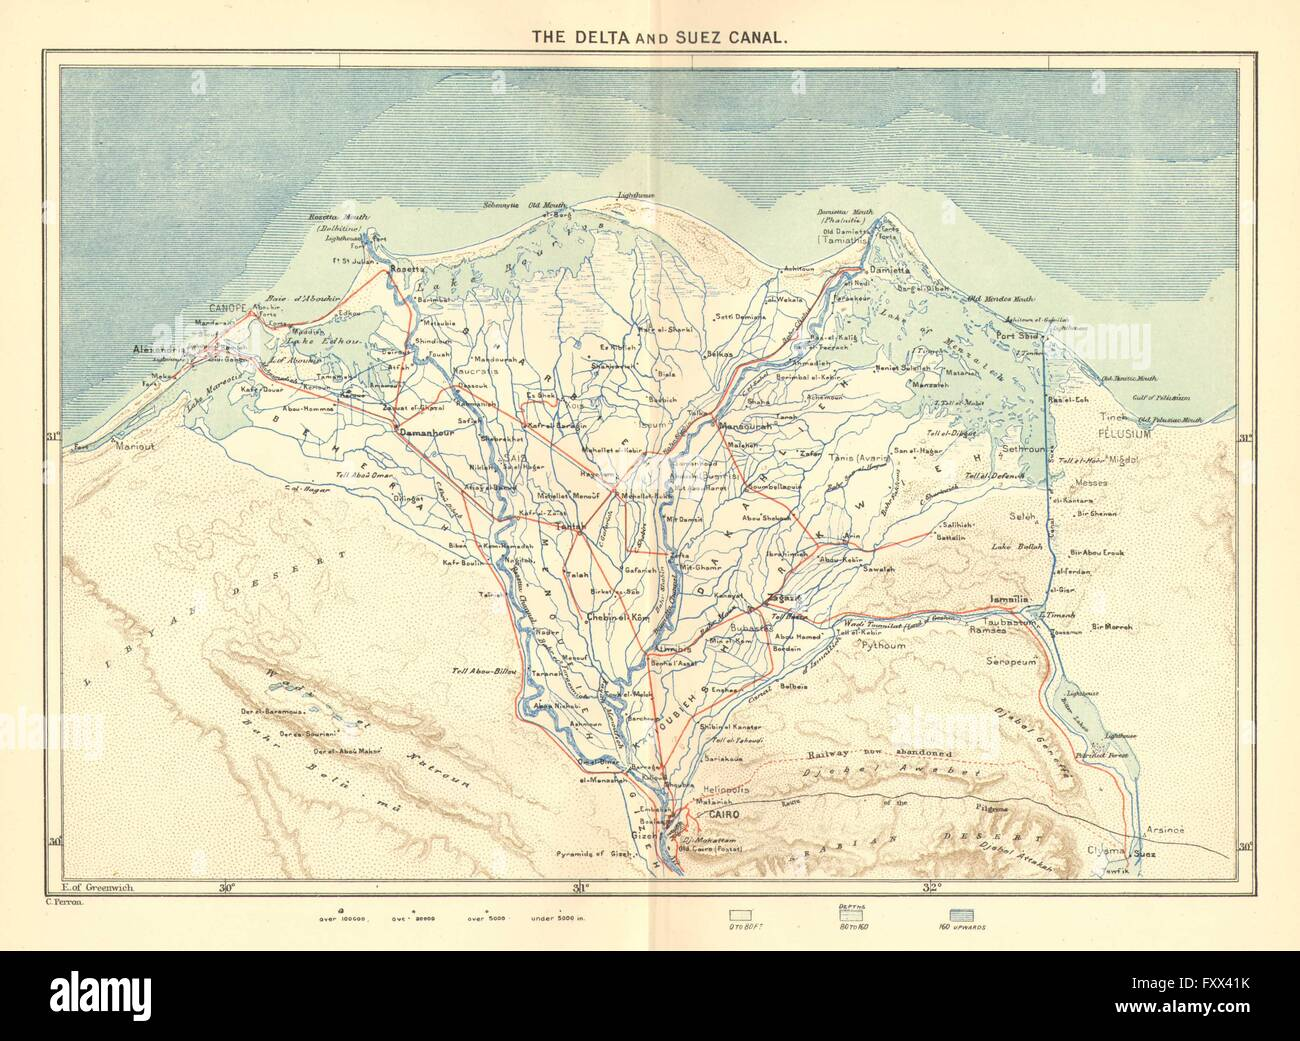 Map of the suez canal stock photos map of the suez canal stock egypt delta suez canal c1885 antique map stock image gumiabroncs Image collections